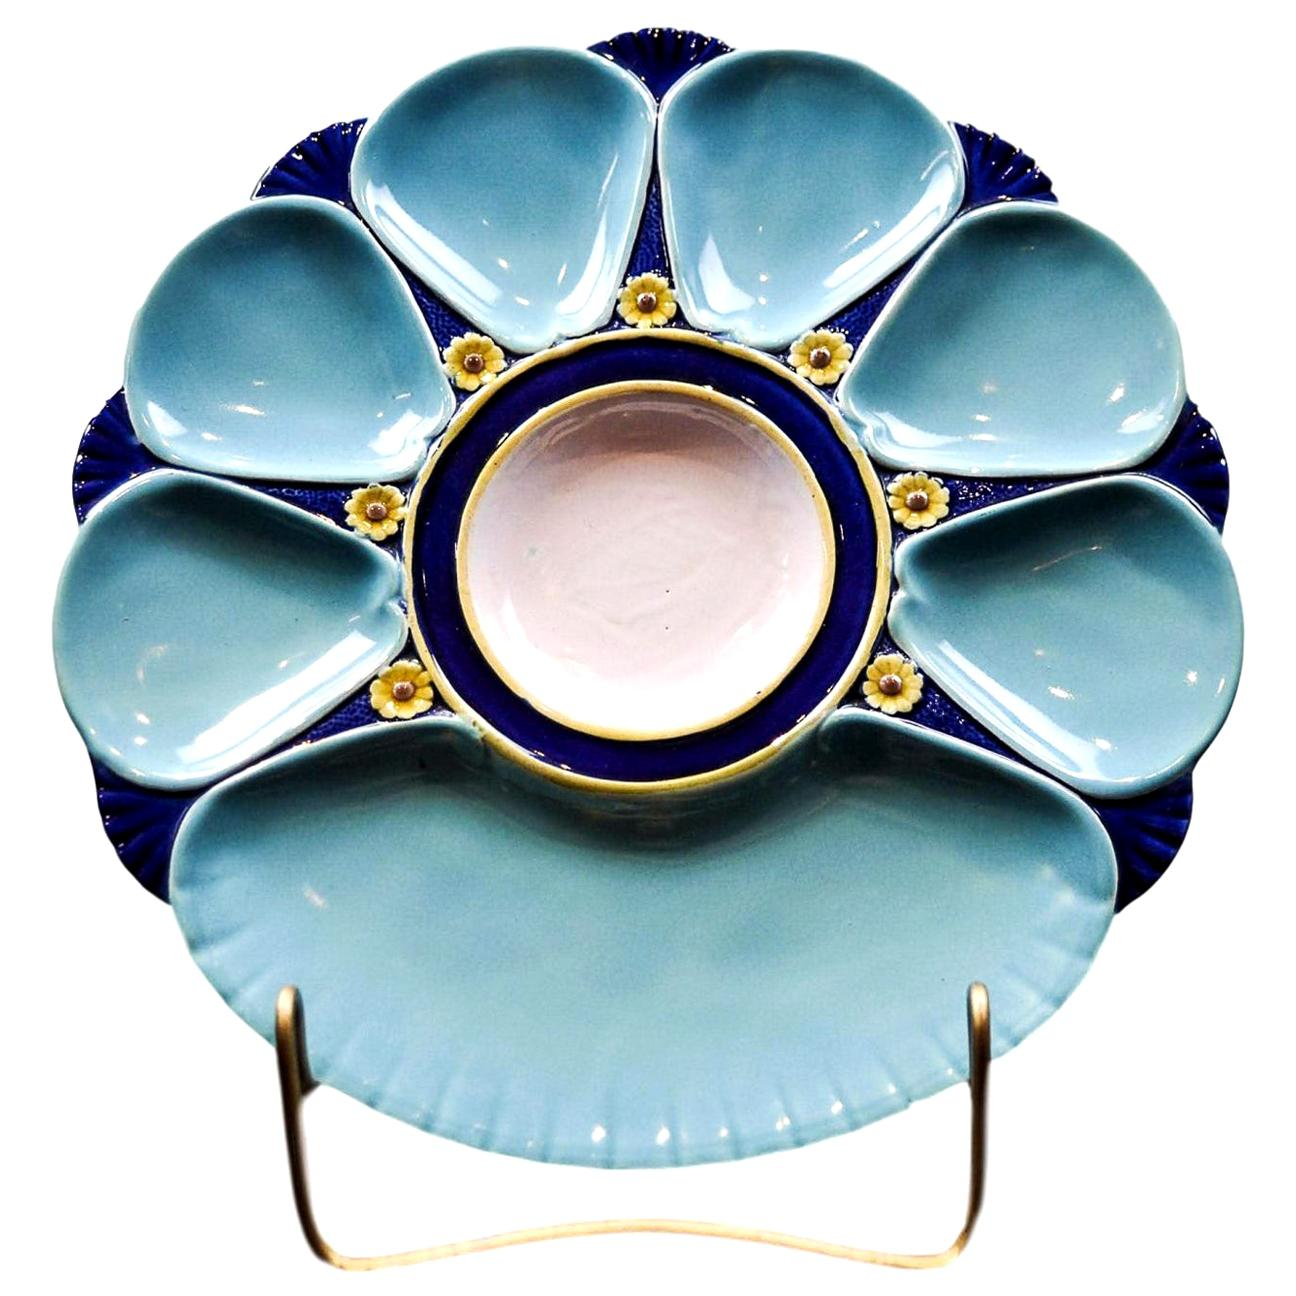 Minton Majolica Oyster Plate